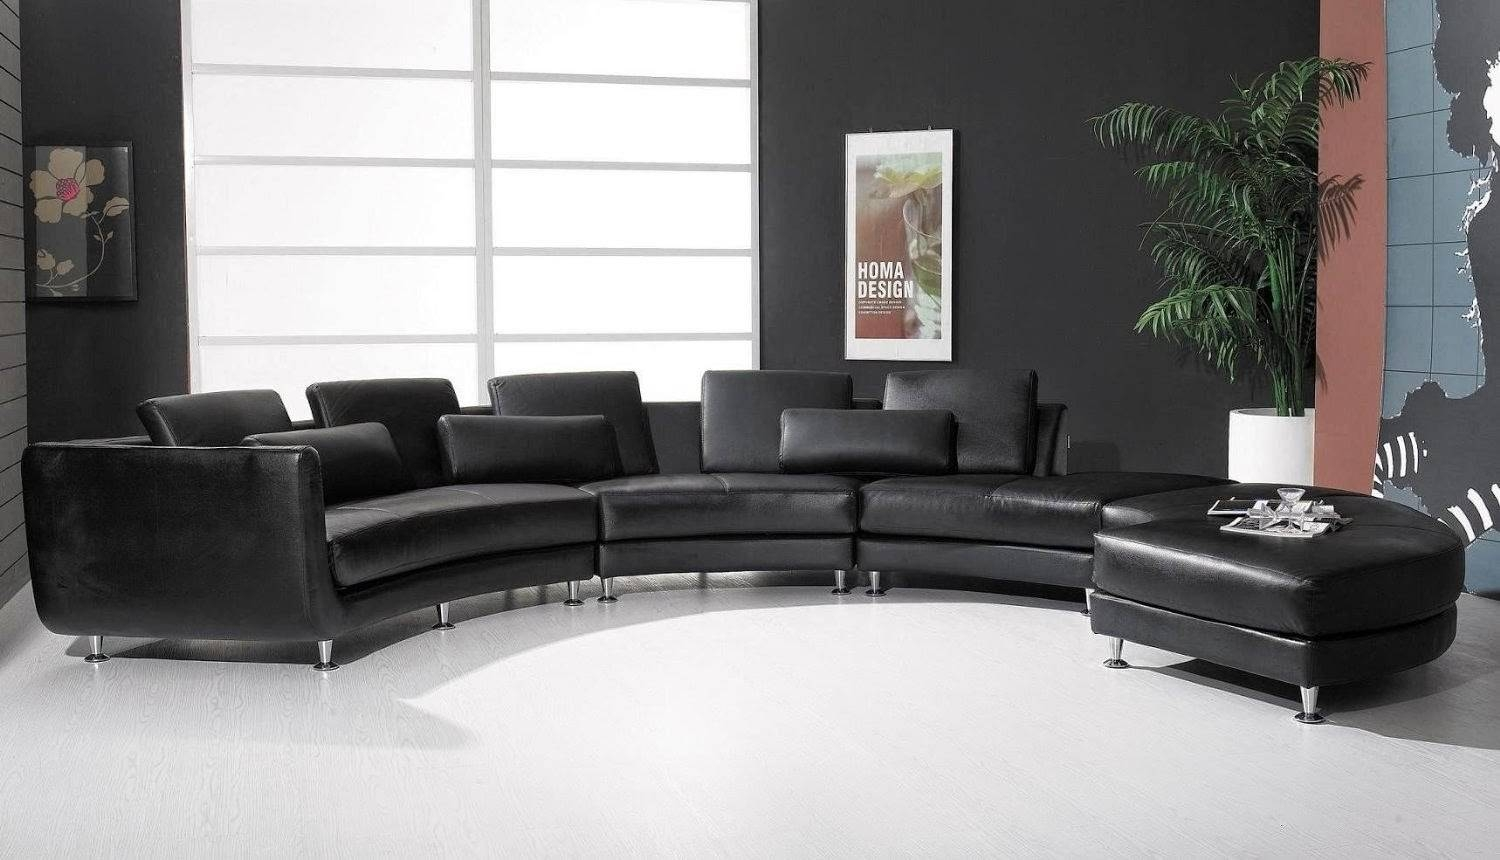 Sofas Center : Round Sectional Sofa For Sale With Recliners Cloth inside Round Sectional Sofa (Image 29 of 30)